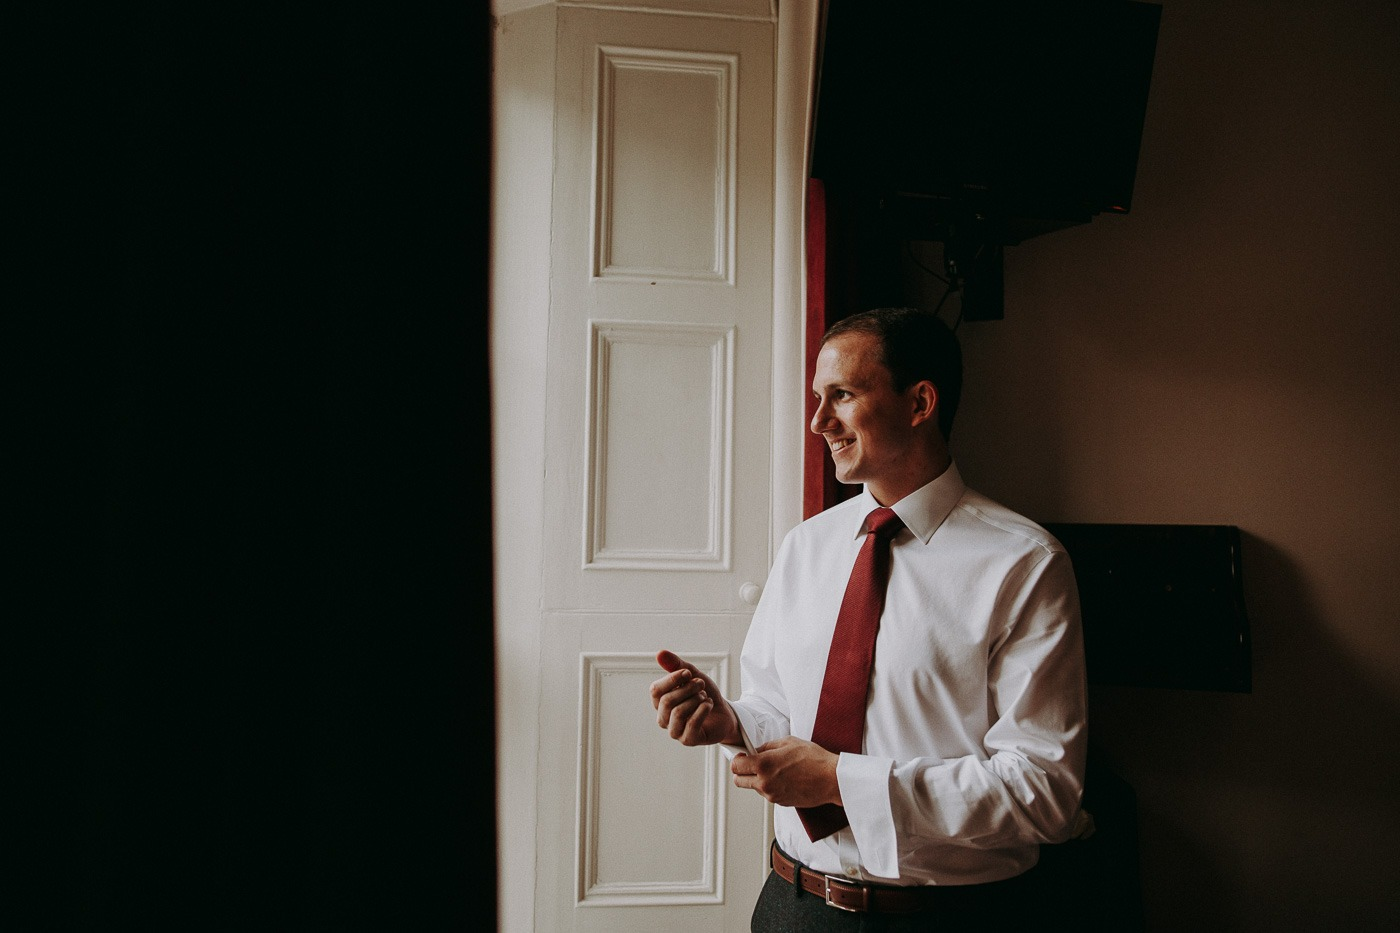 A man wearing a suit and tie standing in front of a door